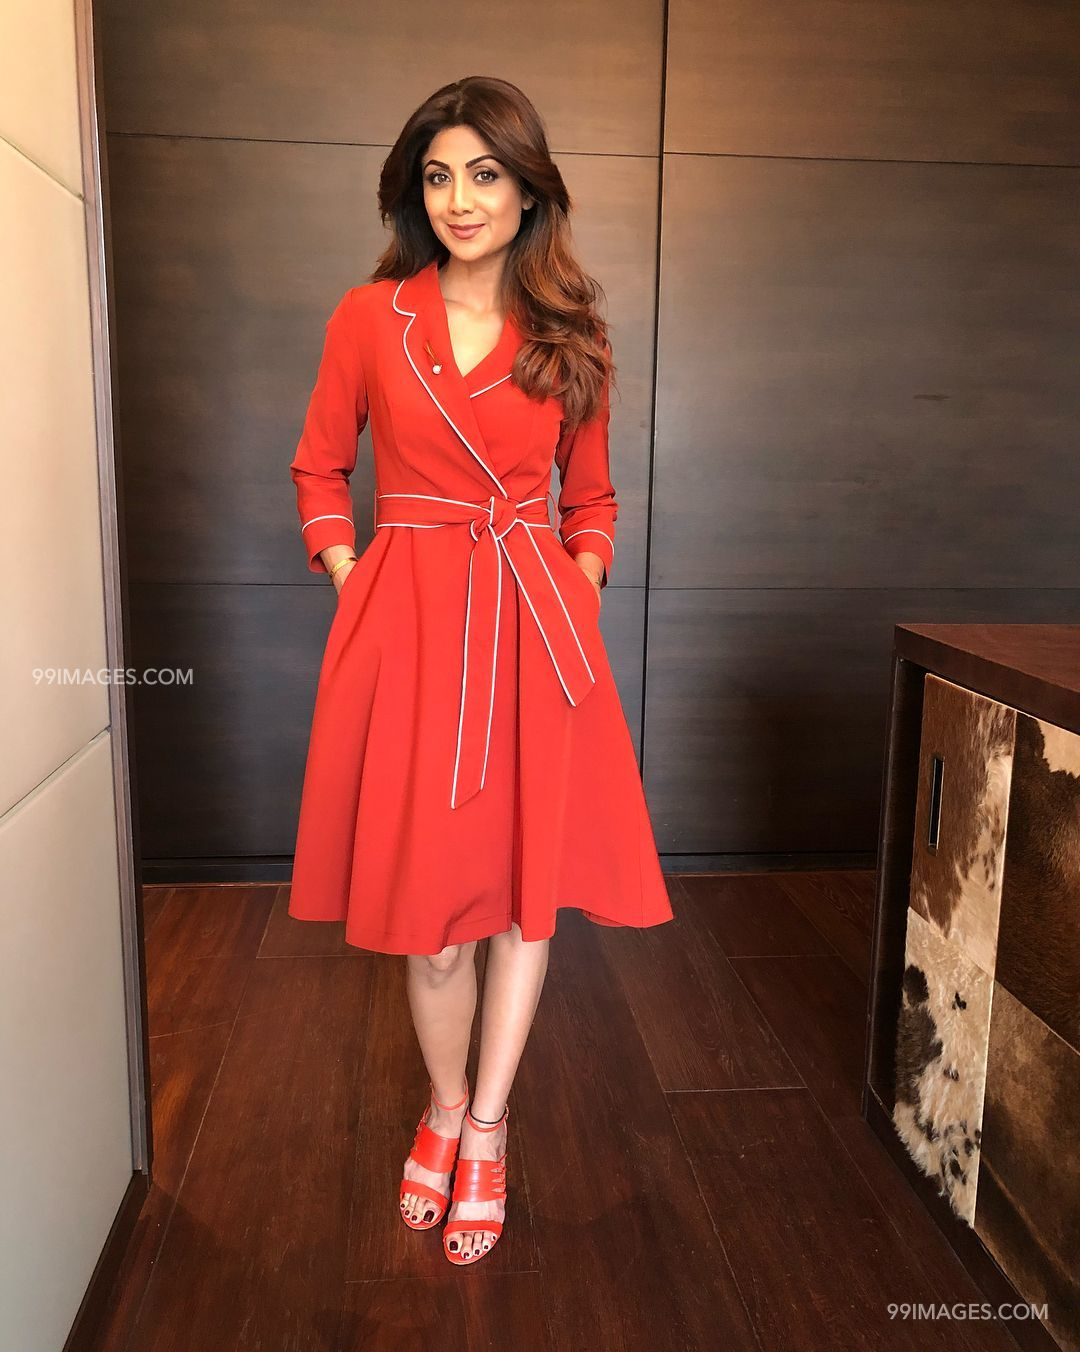 60 Shilpa Shetty Hot Hd Photos  Wallpapers For Mobile 1080P 2019-6499